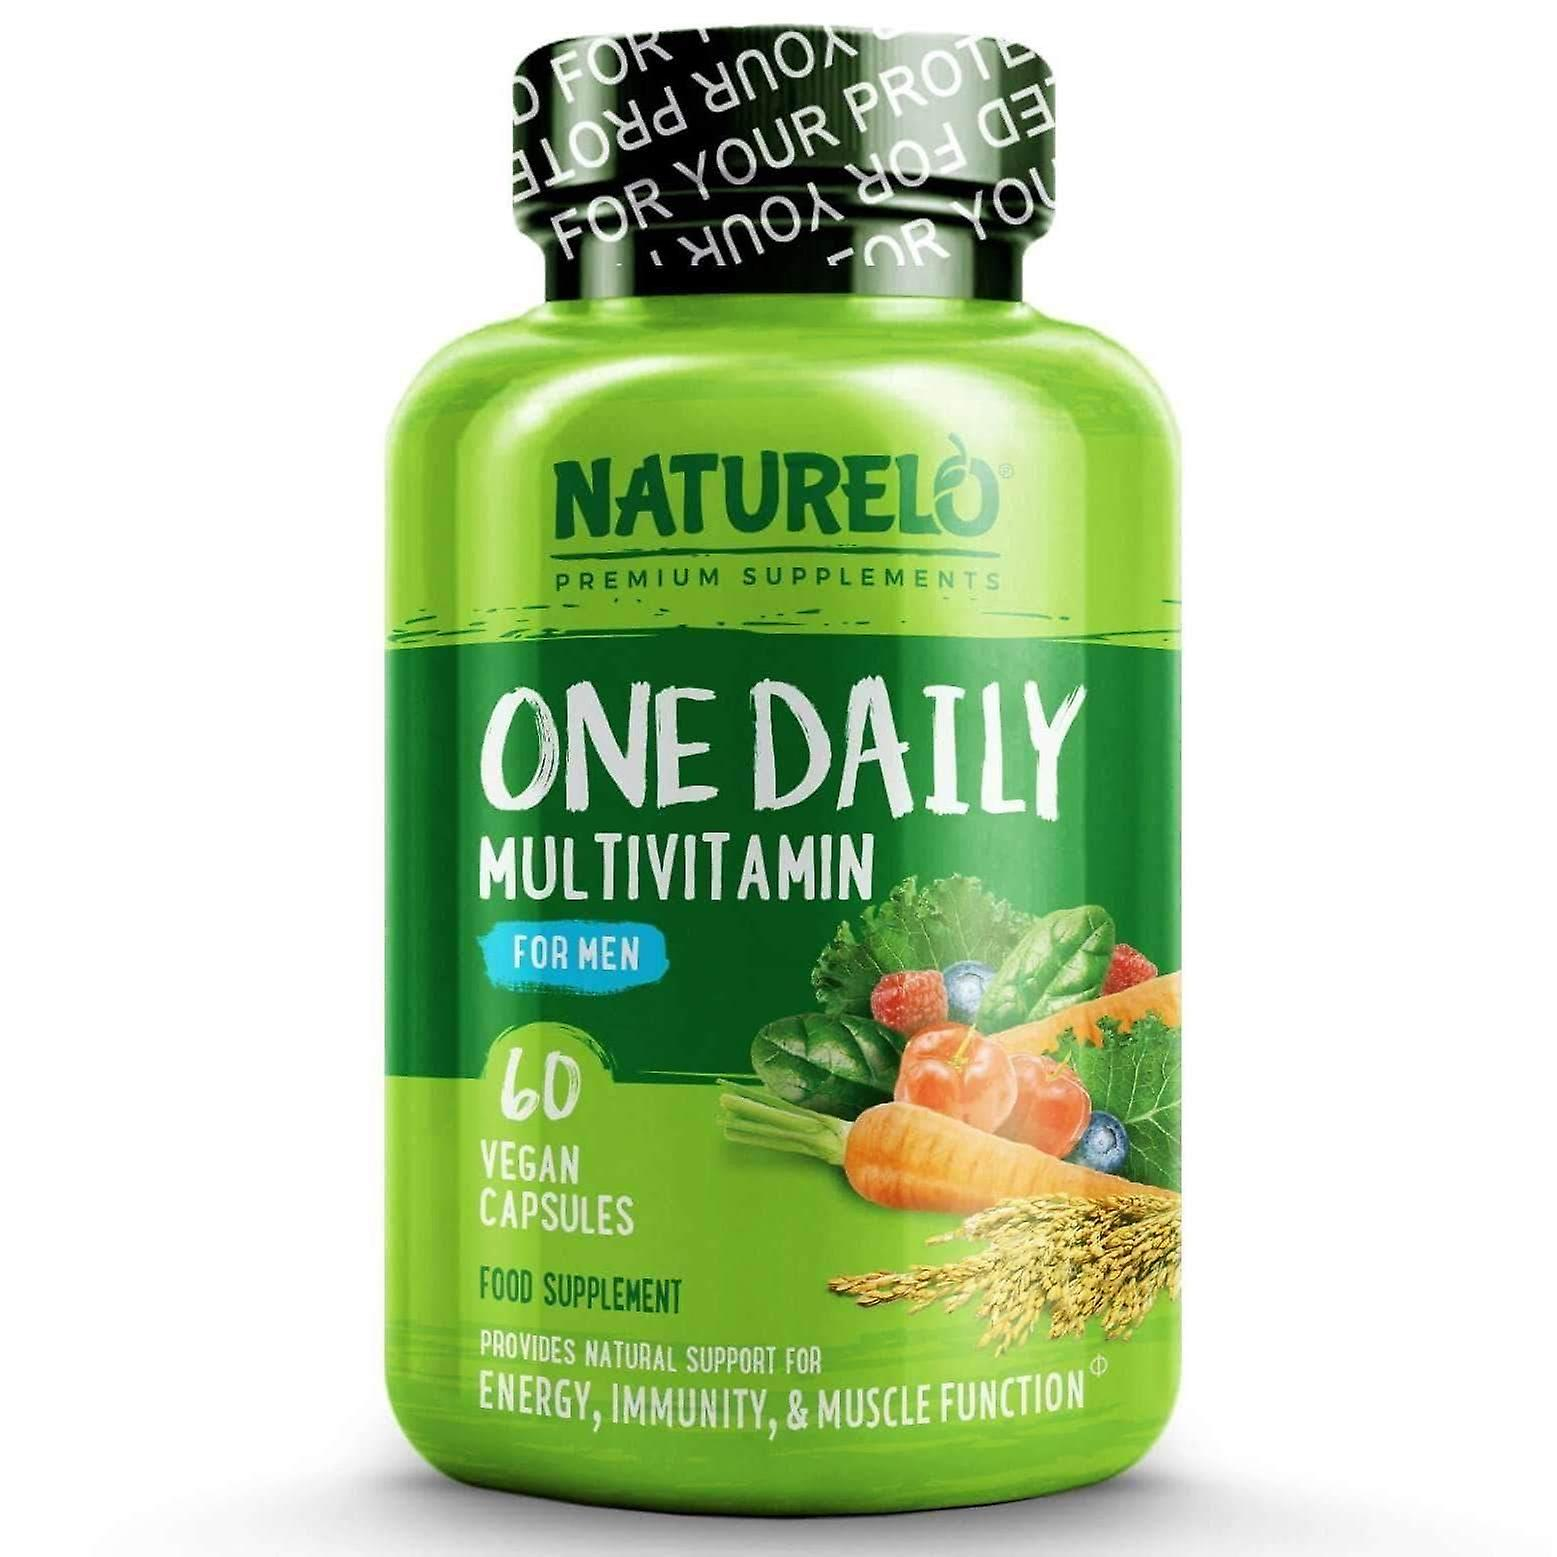 One daily multivitamin for men with natural vitamins and fruit extracts